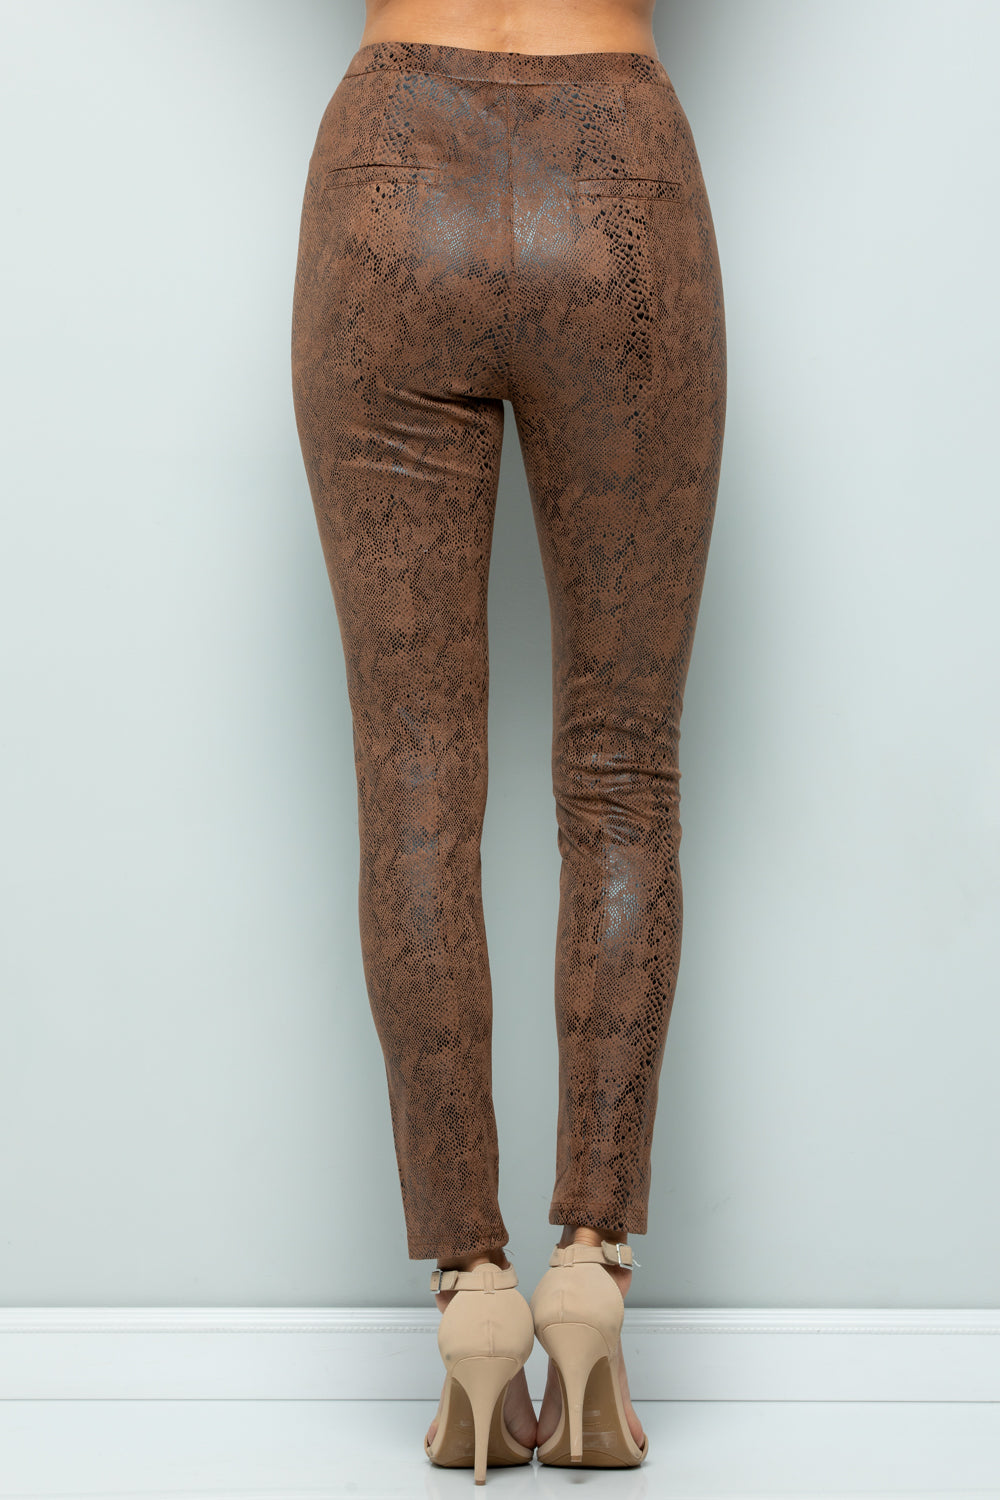 P7045 Snake Skin Leggings - MINT